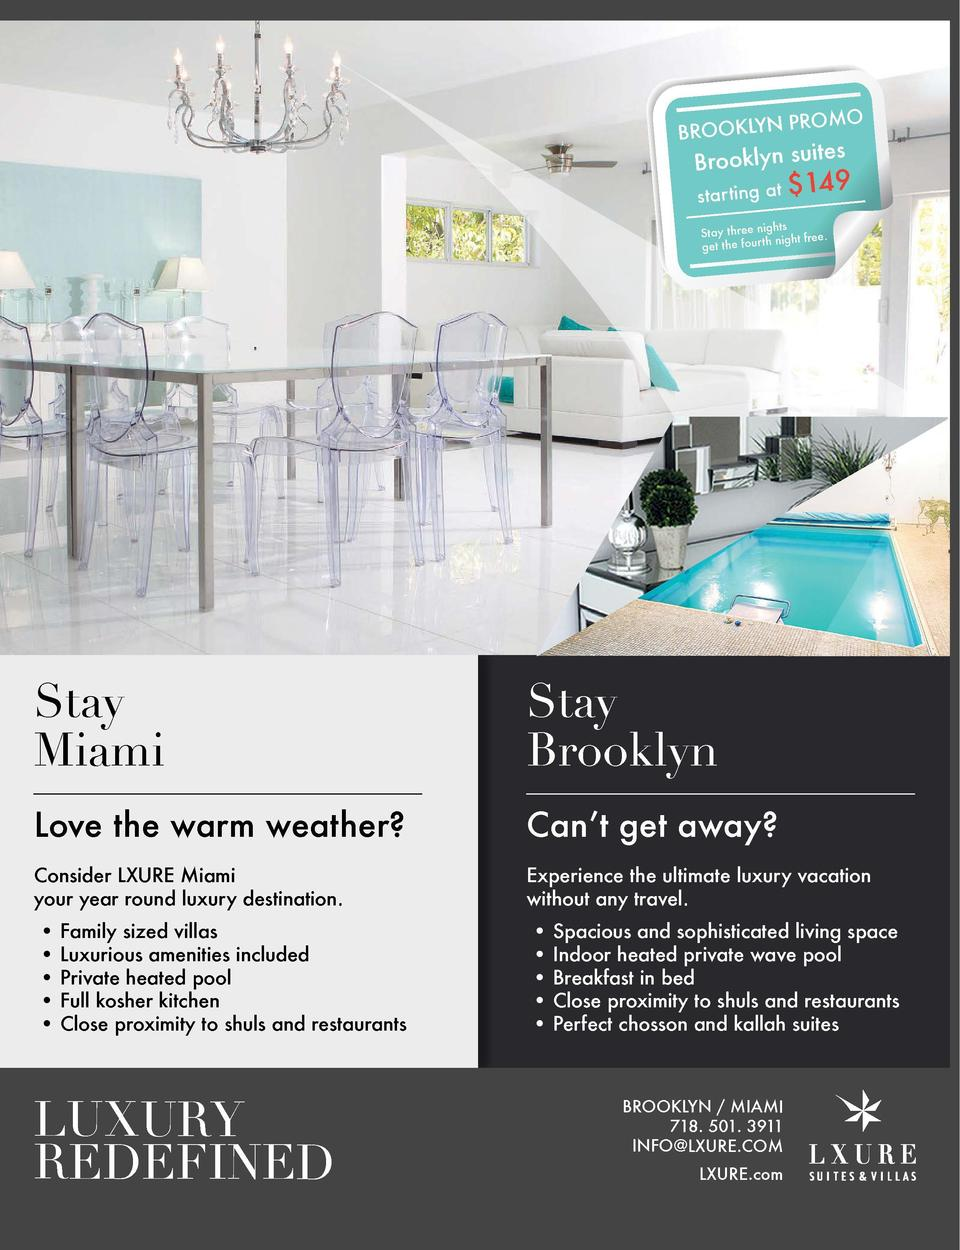 BROOKLYN  fall in love with life  PROMO  es Brooklyn suit starting at   149  ghts Stay three ni night free. get the four t...